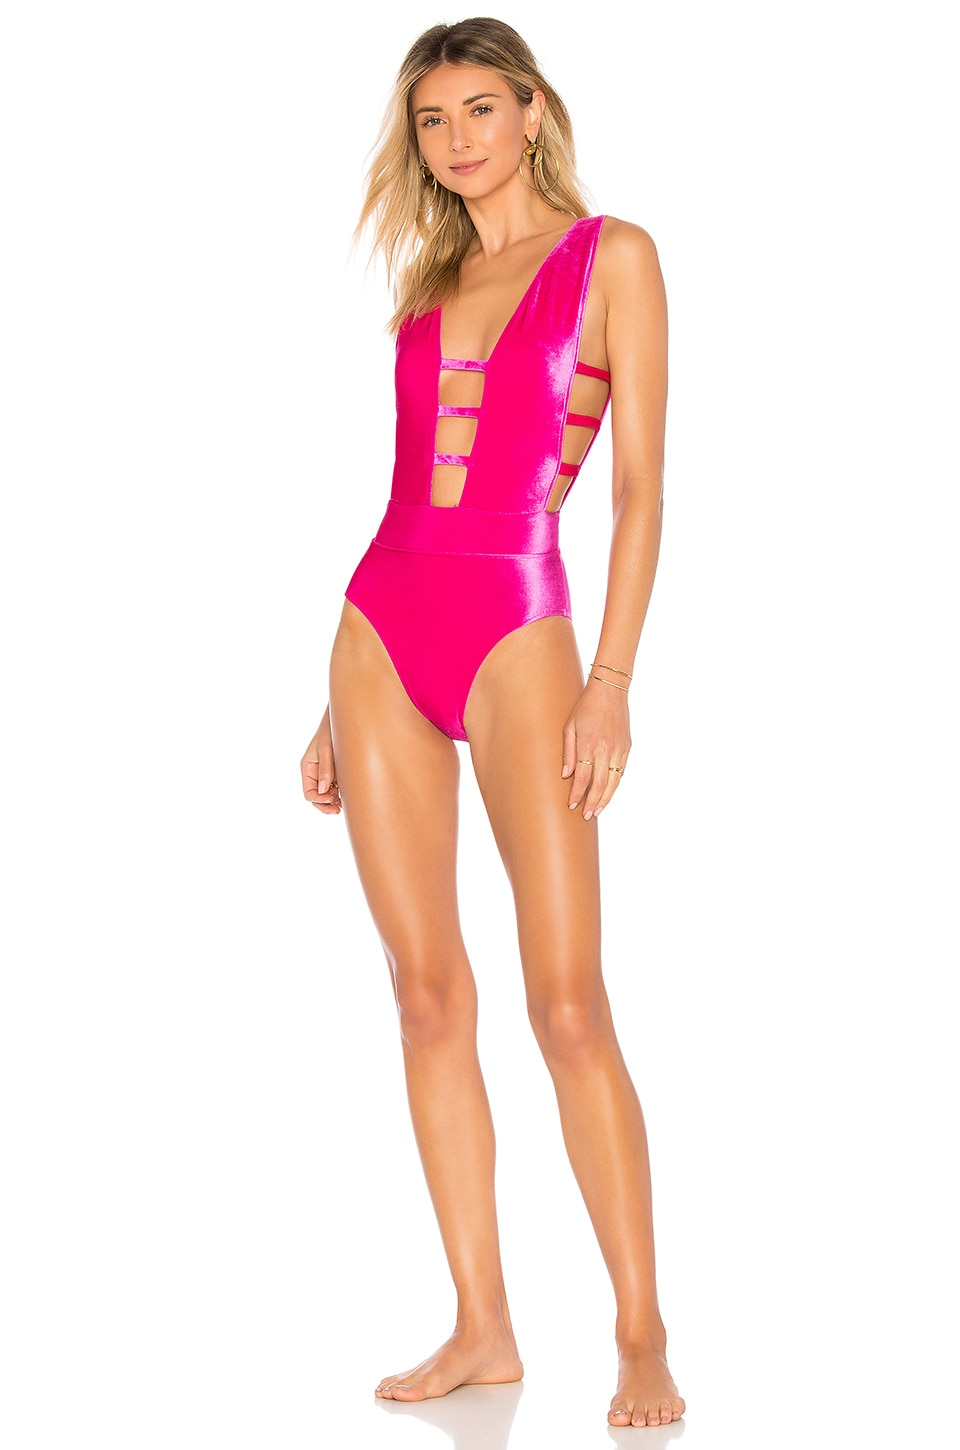 SAUVAGE X Revolve Ladder Luxe One Piece in Fuchsia